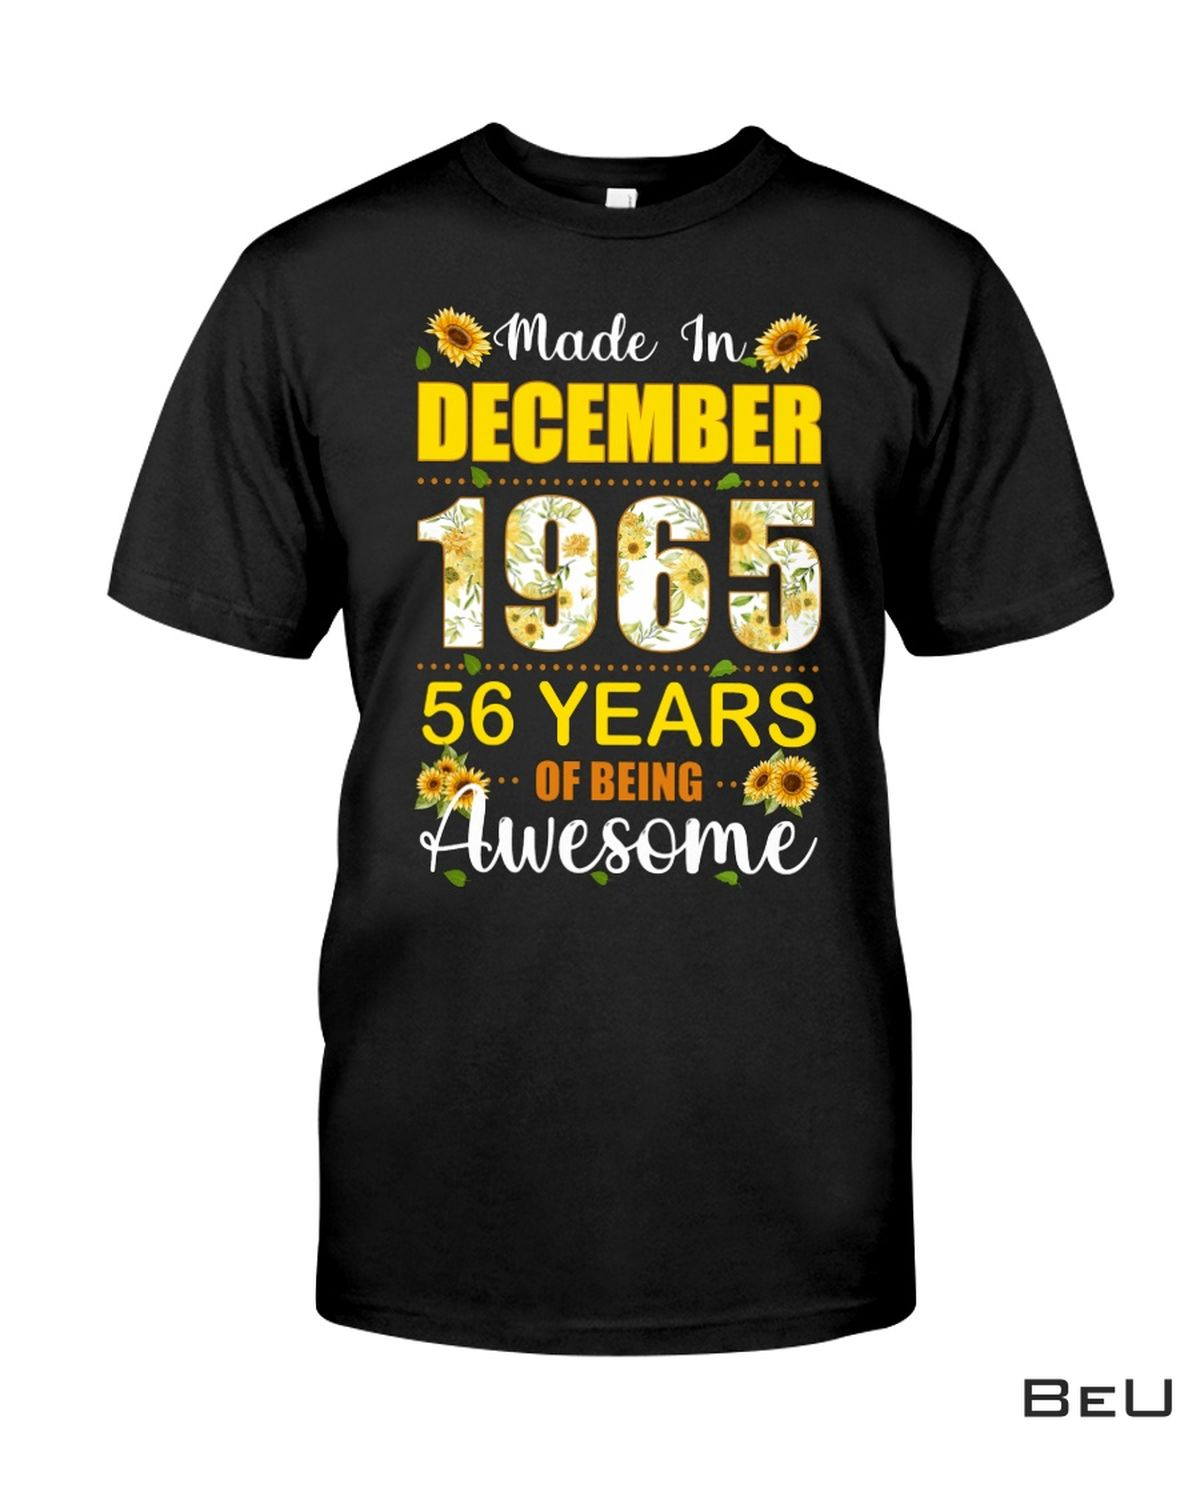 Make In December 1965 56 Years Of Being Awesome Sunflowers Shirt